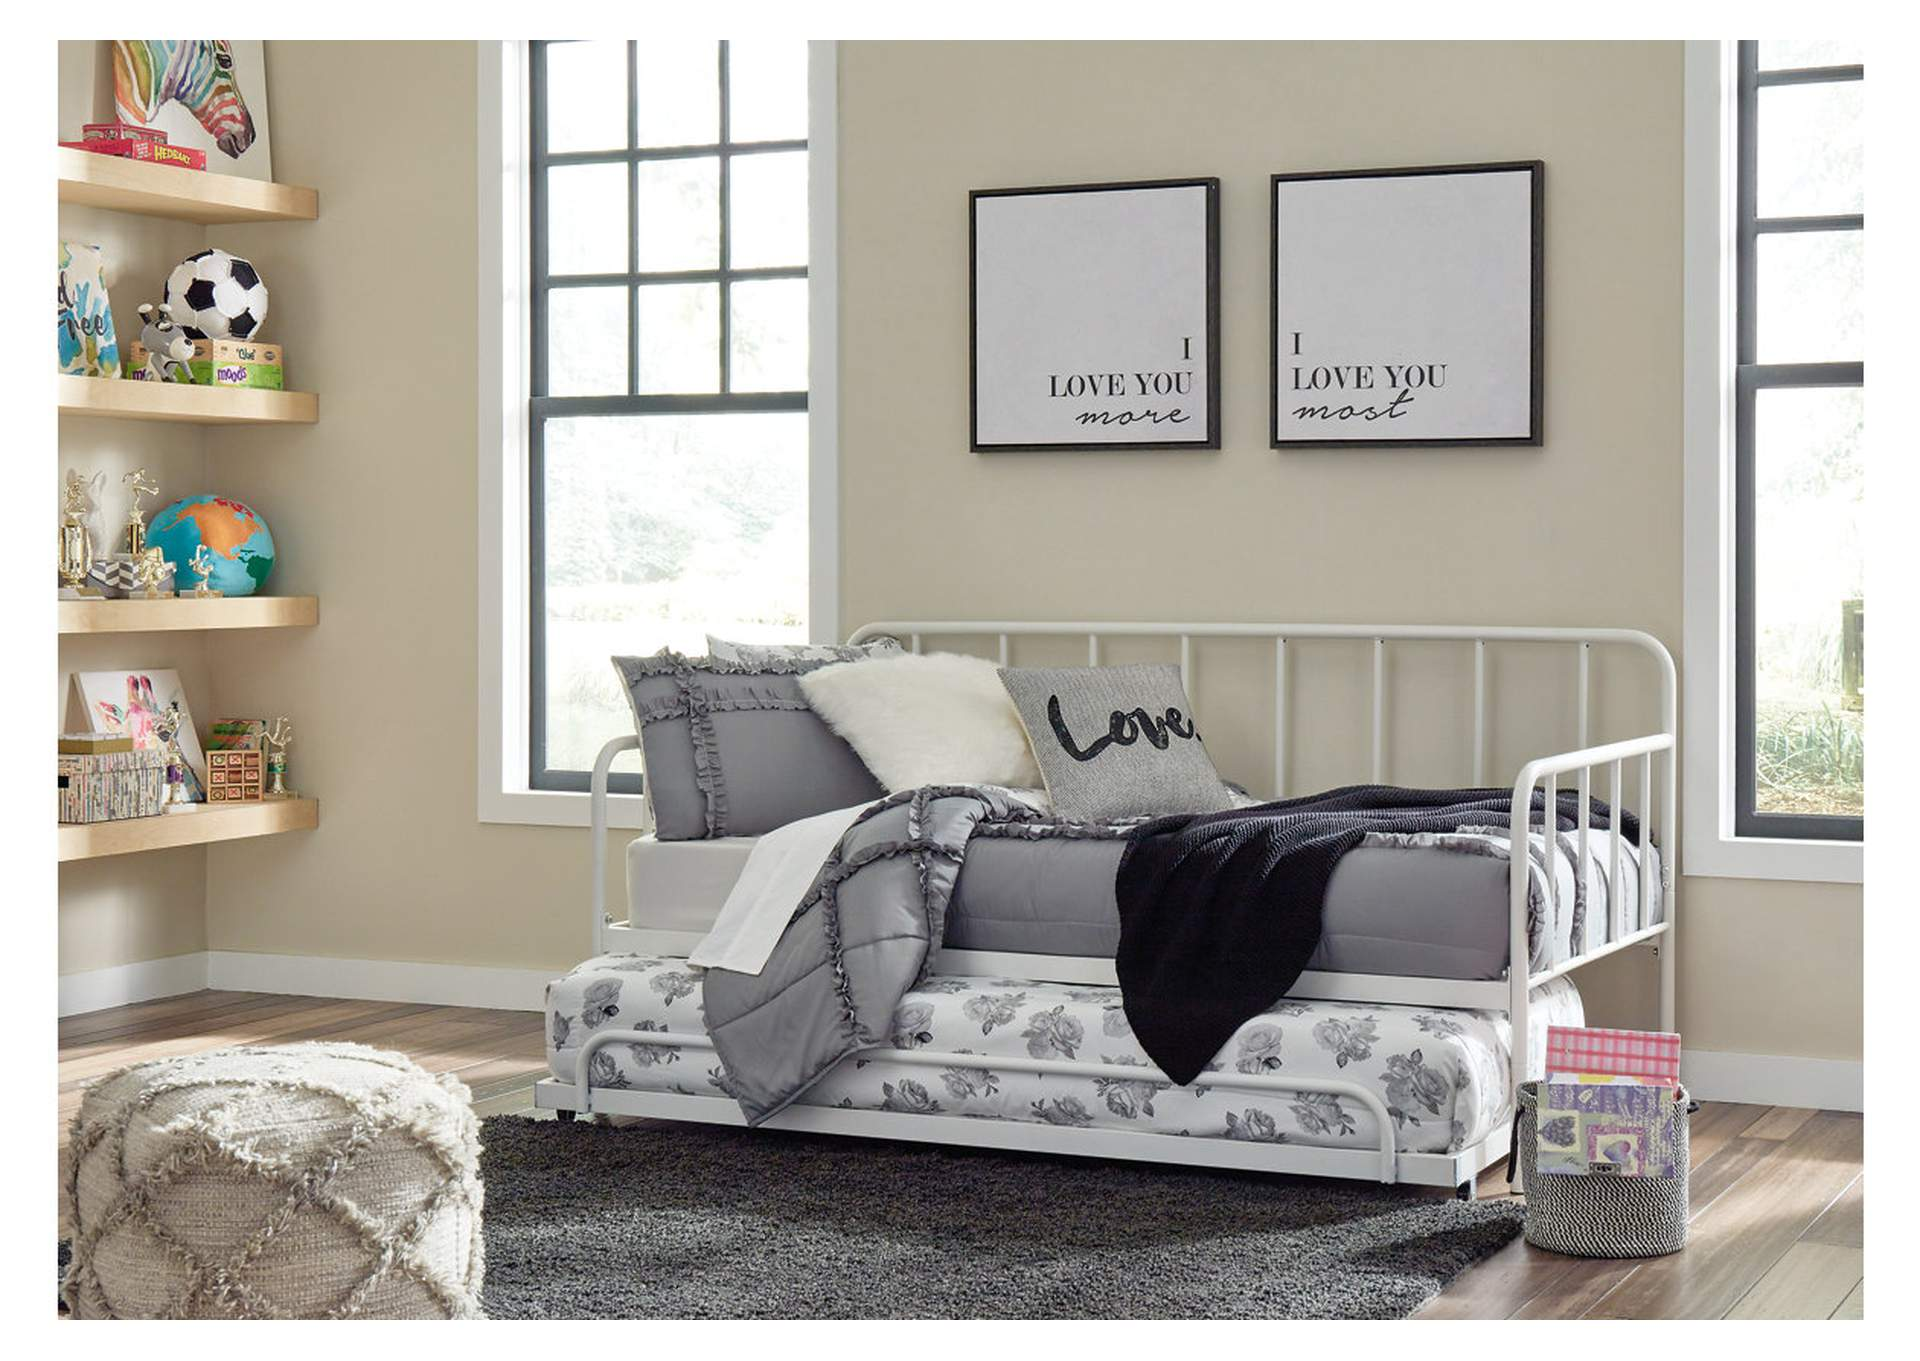 Trentlore Twin Metal Day Bed with Trundle,Signature Design By Ashley